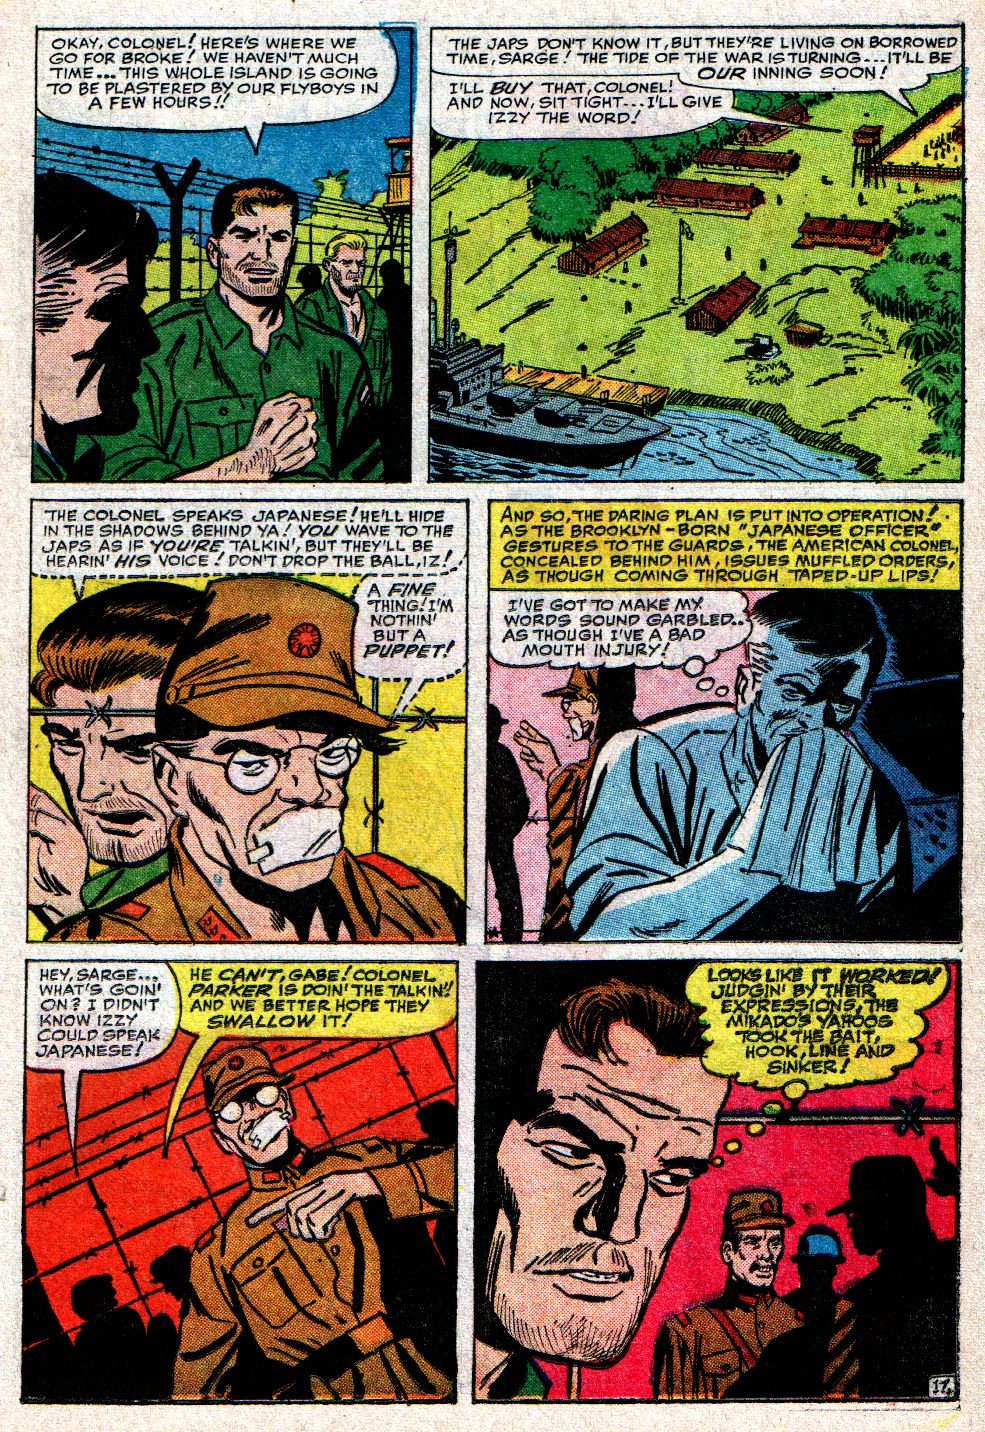 Read online Sgt. Fury comic -  Issue #10 - 23